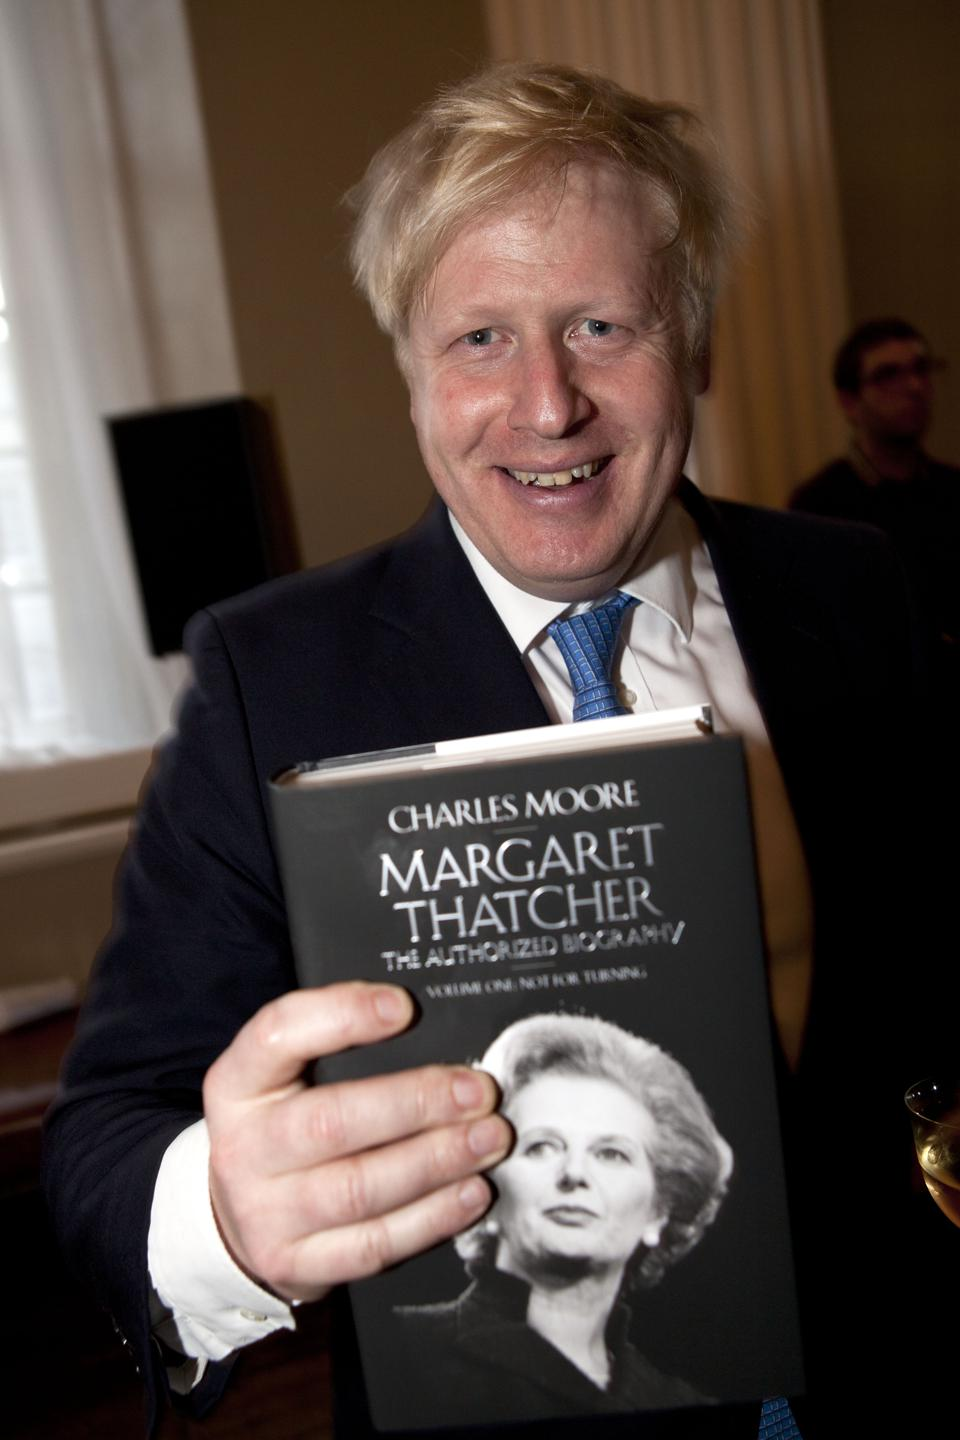 ″Margaret Thatcher - The Authorised Biography, Volume One: Not for Turning″ by Charles Moore - Book Launch Party